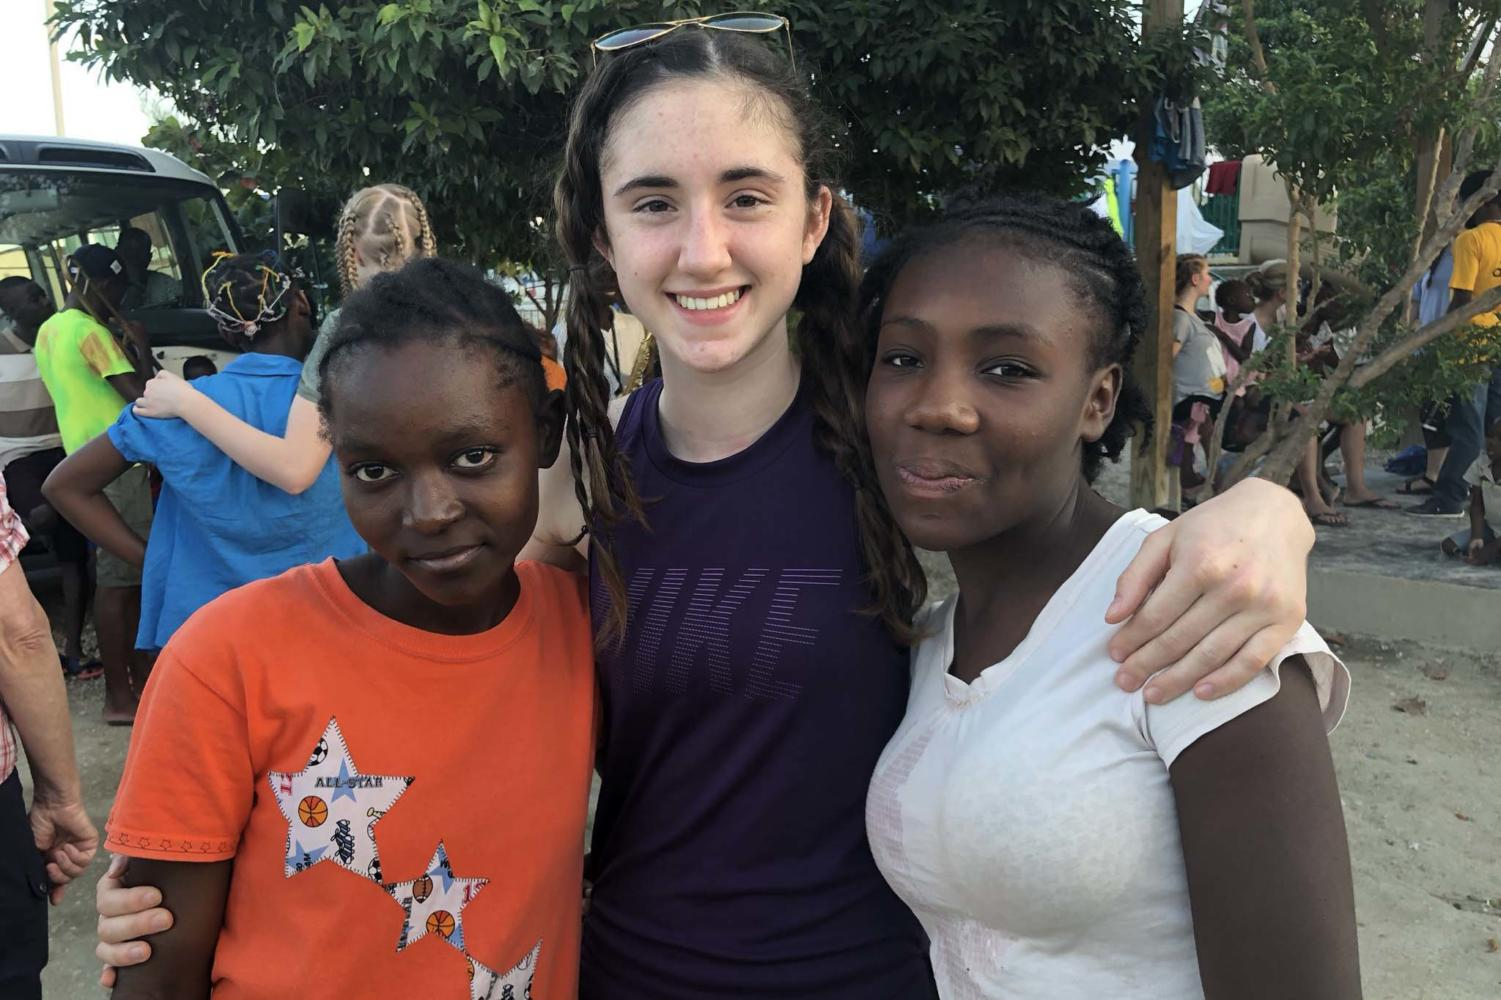 Sophmore Grace Hill hugs her new friends she has made while in Haiti volunteering with the Global Orphan Project.